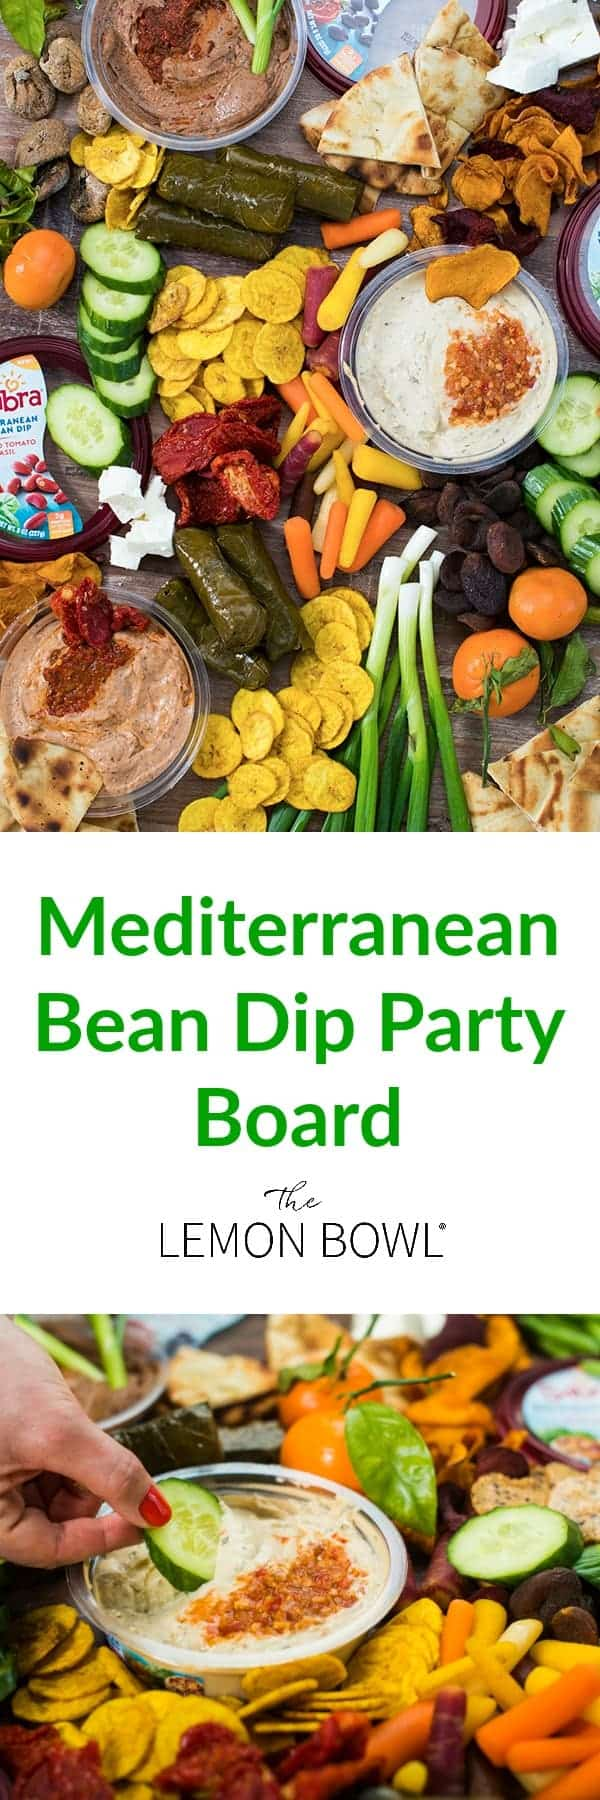 Mediterrane Küche An Bord Mediterranean Bean Dip Party Board The Lemon Bowl